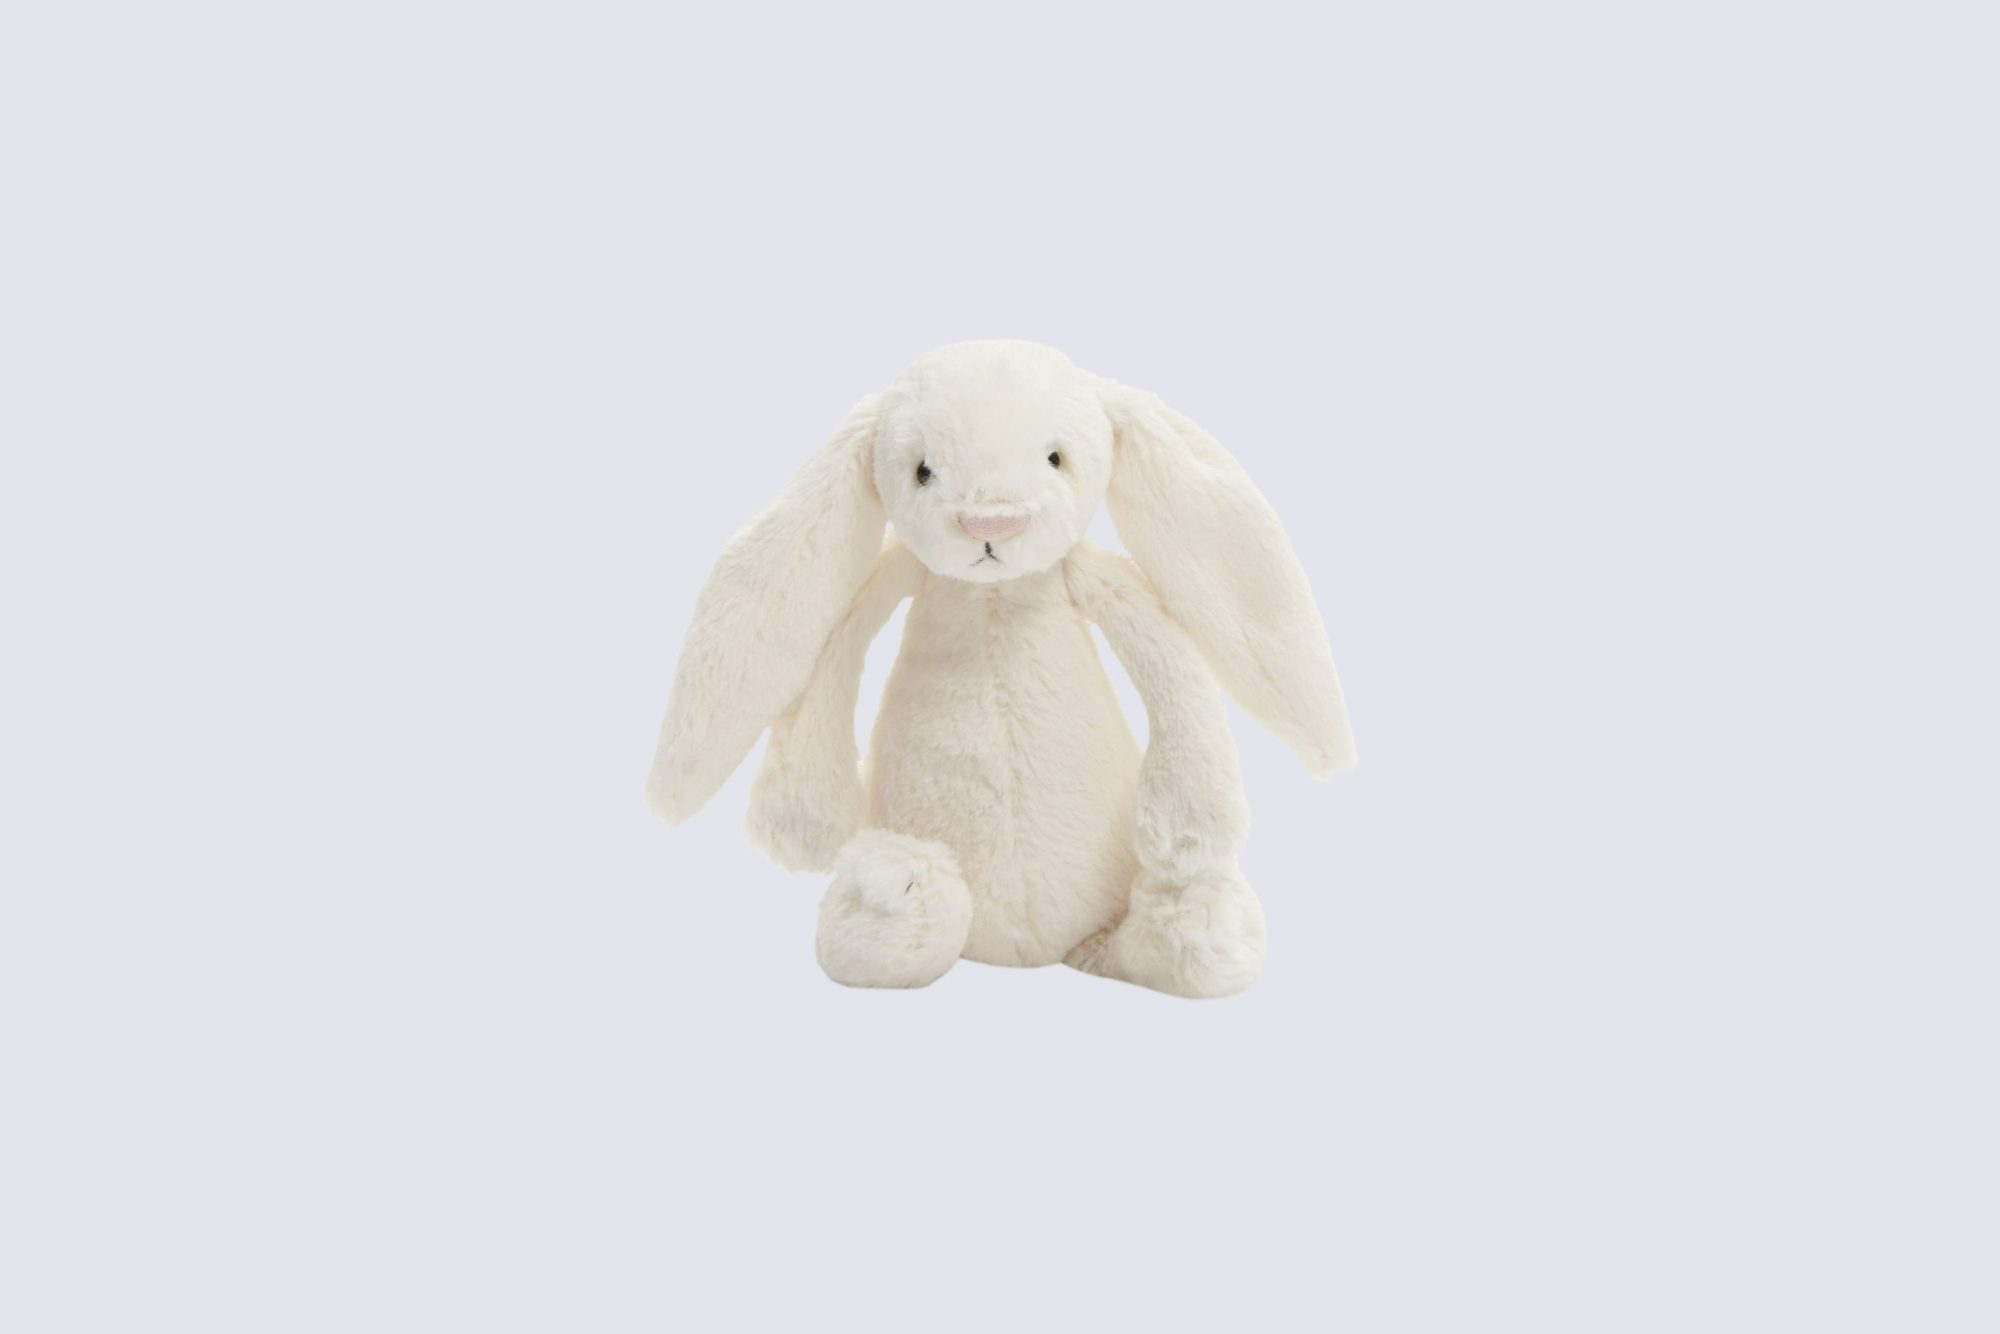 Jellycat Small Bashful Bunny Stuffed Animal